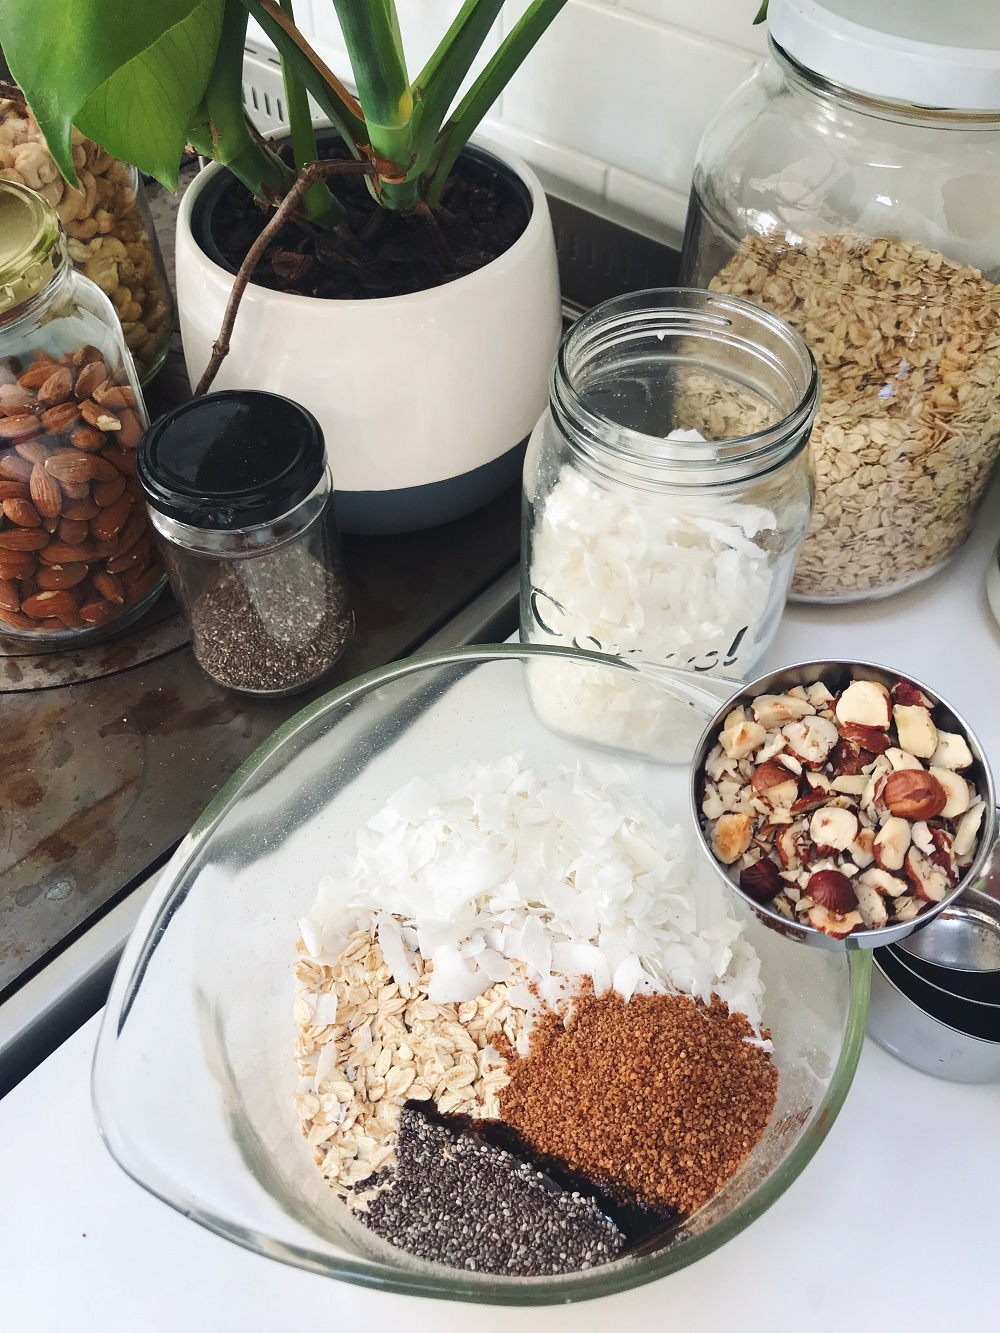 Chocolate granola ingredients